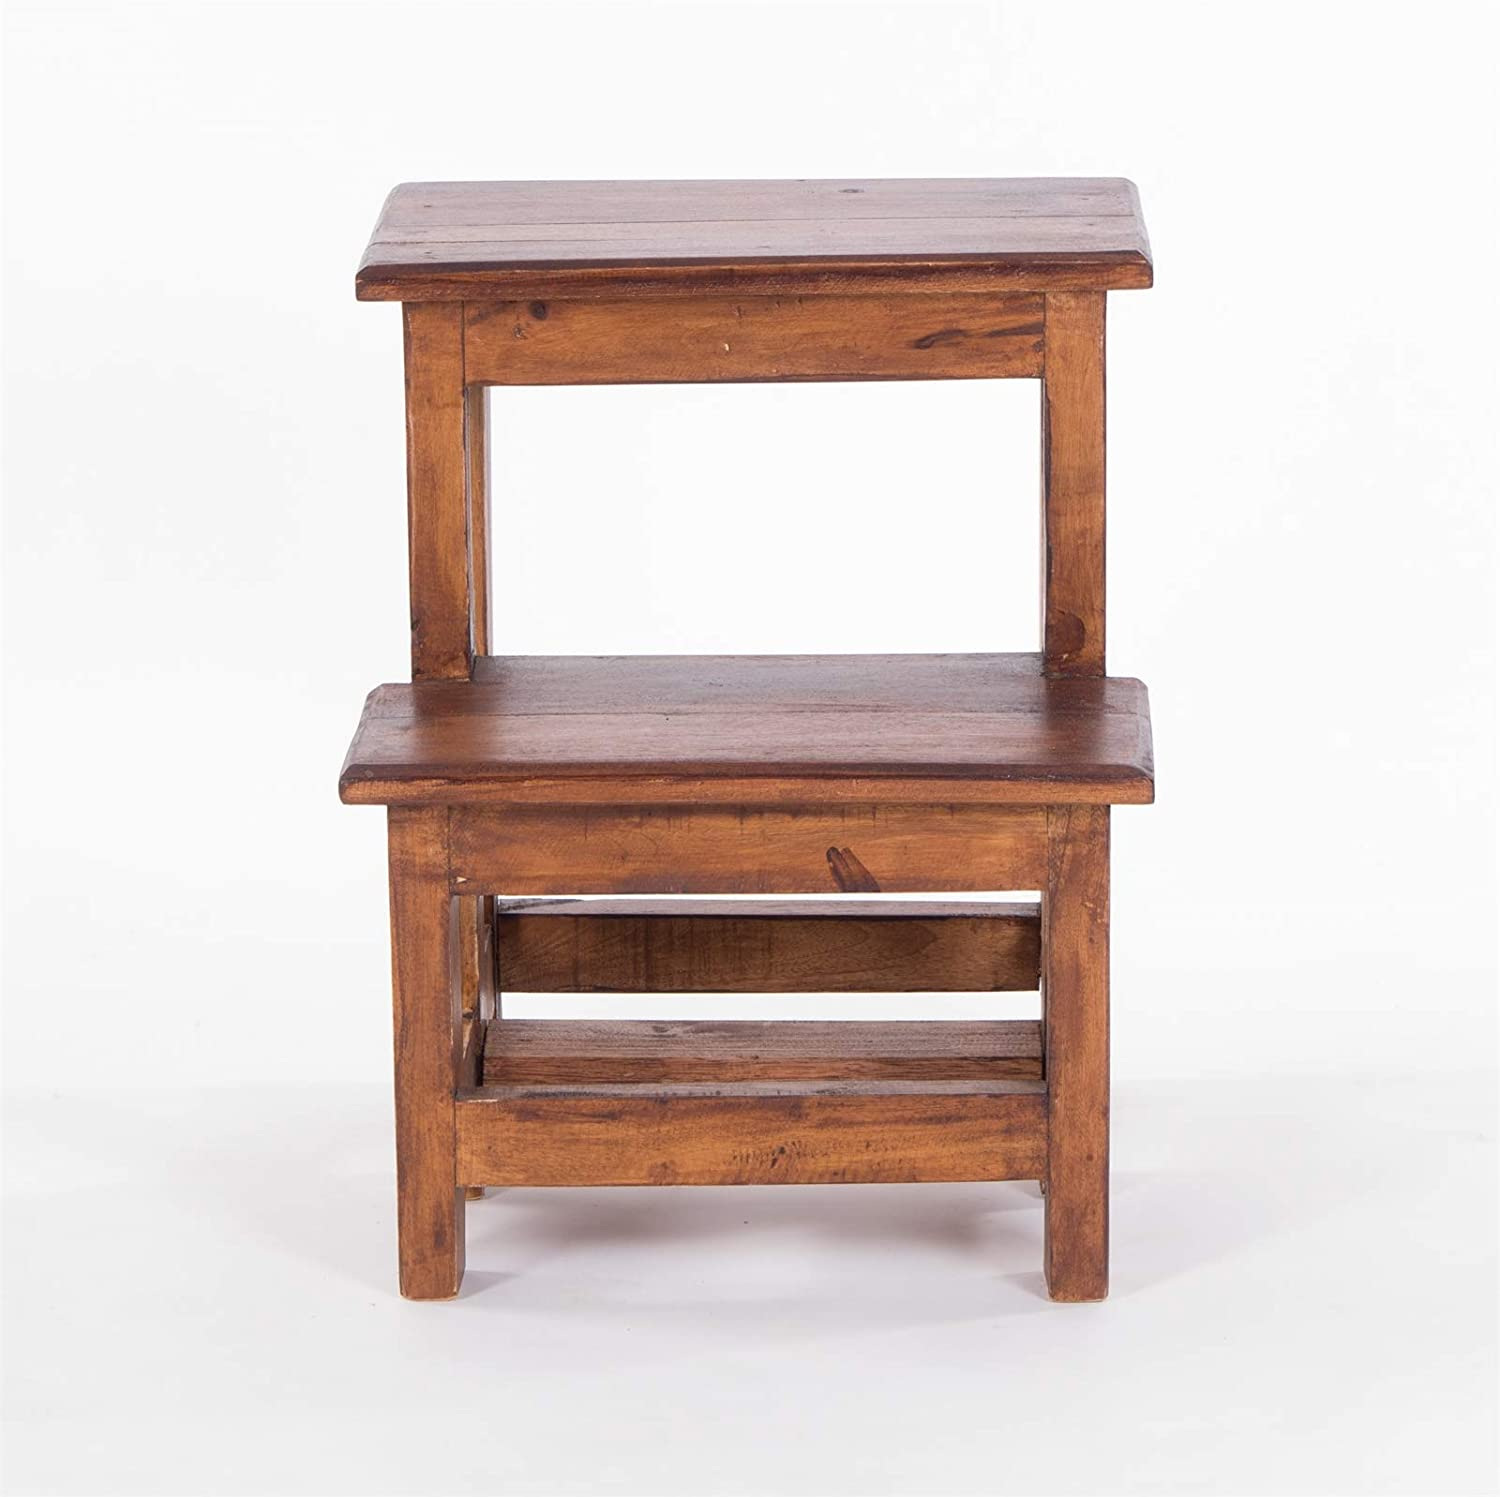 DESIGN DELIGHTS STEPLADDER STEP | 46x37x37 cm (HxWxD), recycled wood | two-stage tread stool, Kids step stool | Colour: 02 light-brown 02 Light-brown